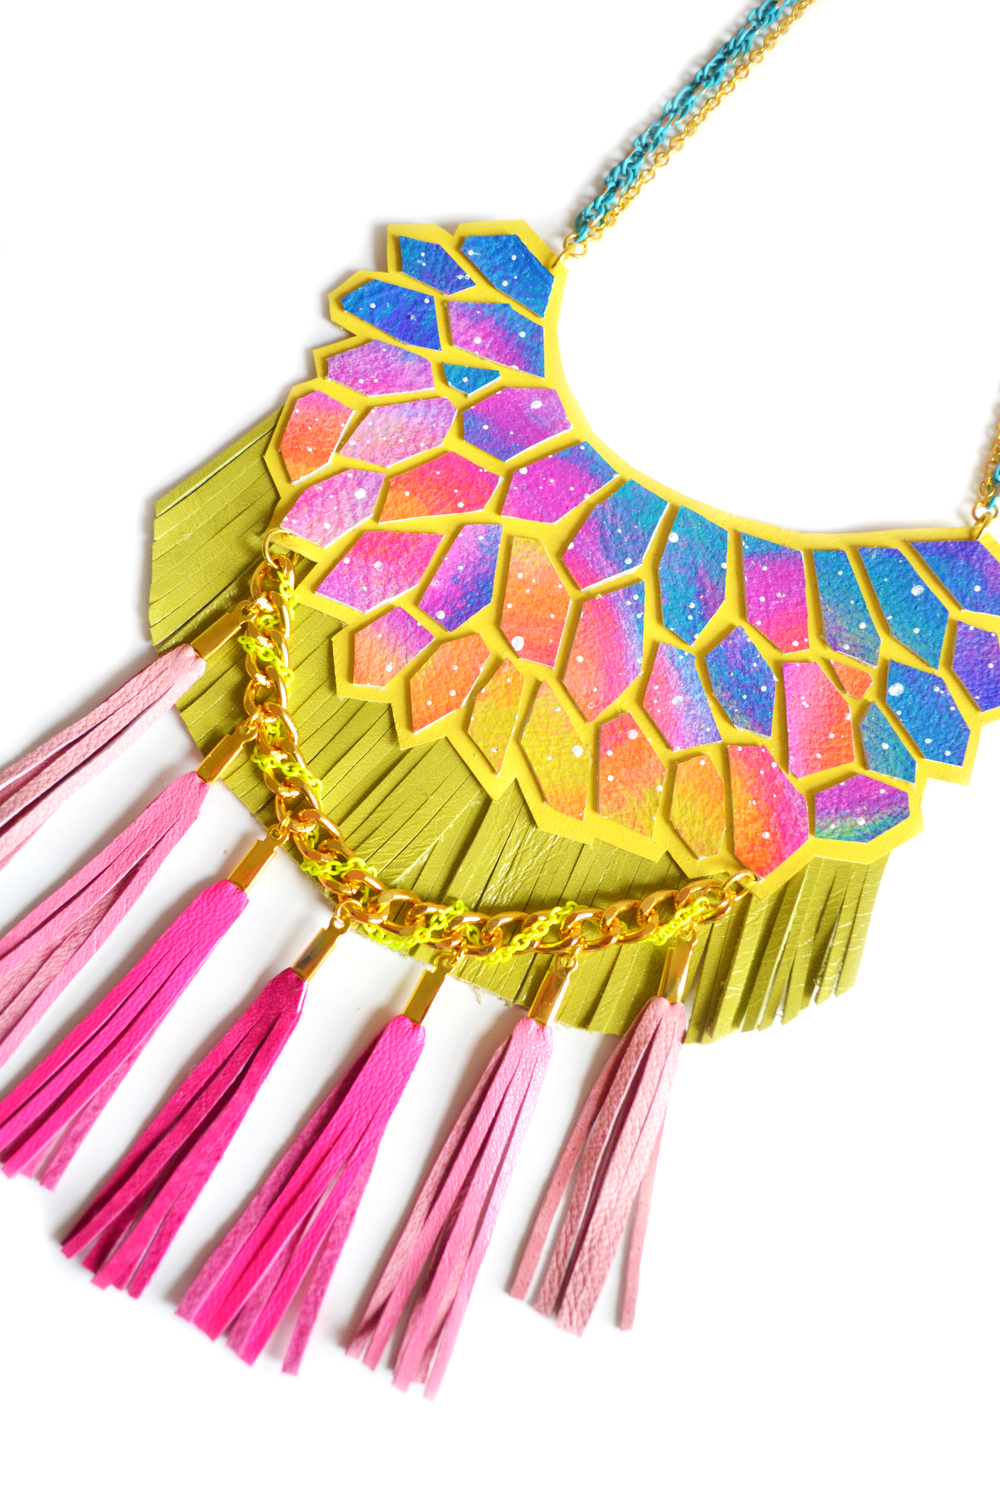 Galaxy Statement Necklace Leather Geometric Hexagon and Neon Fringe Statement Jewelry11.jpg